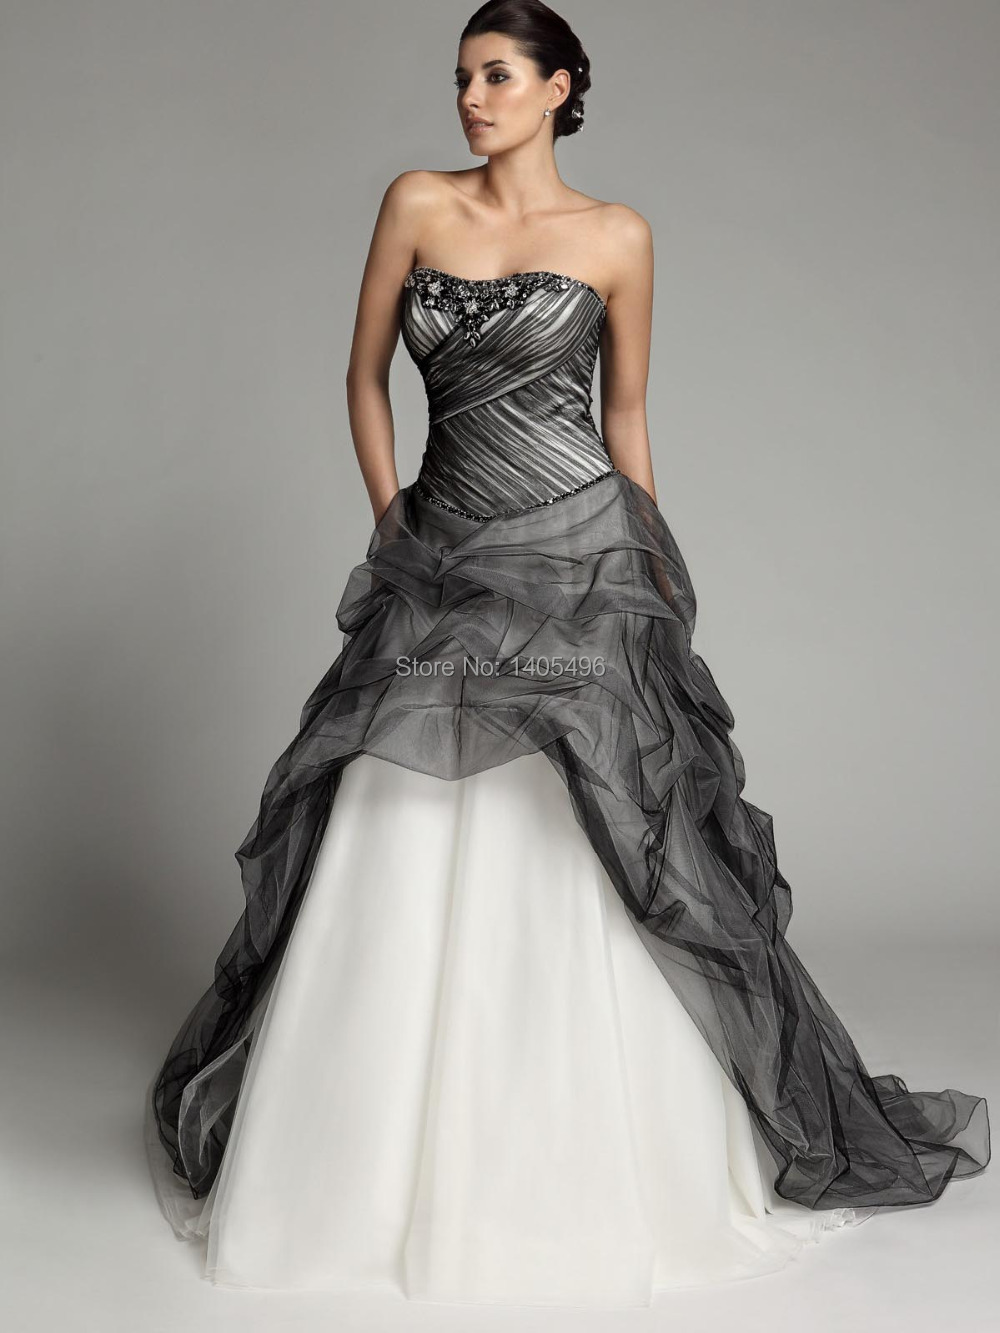 Black And Ivory Wedding Gowns